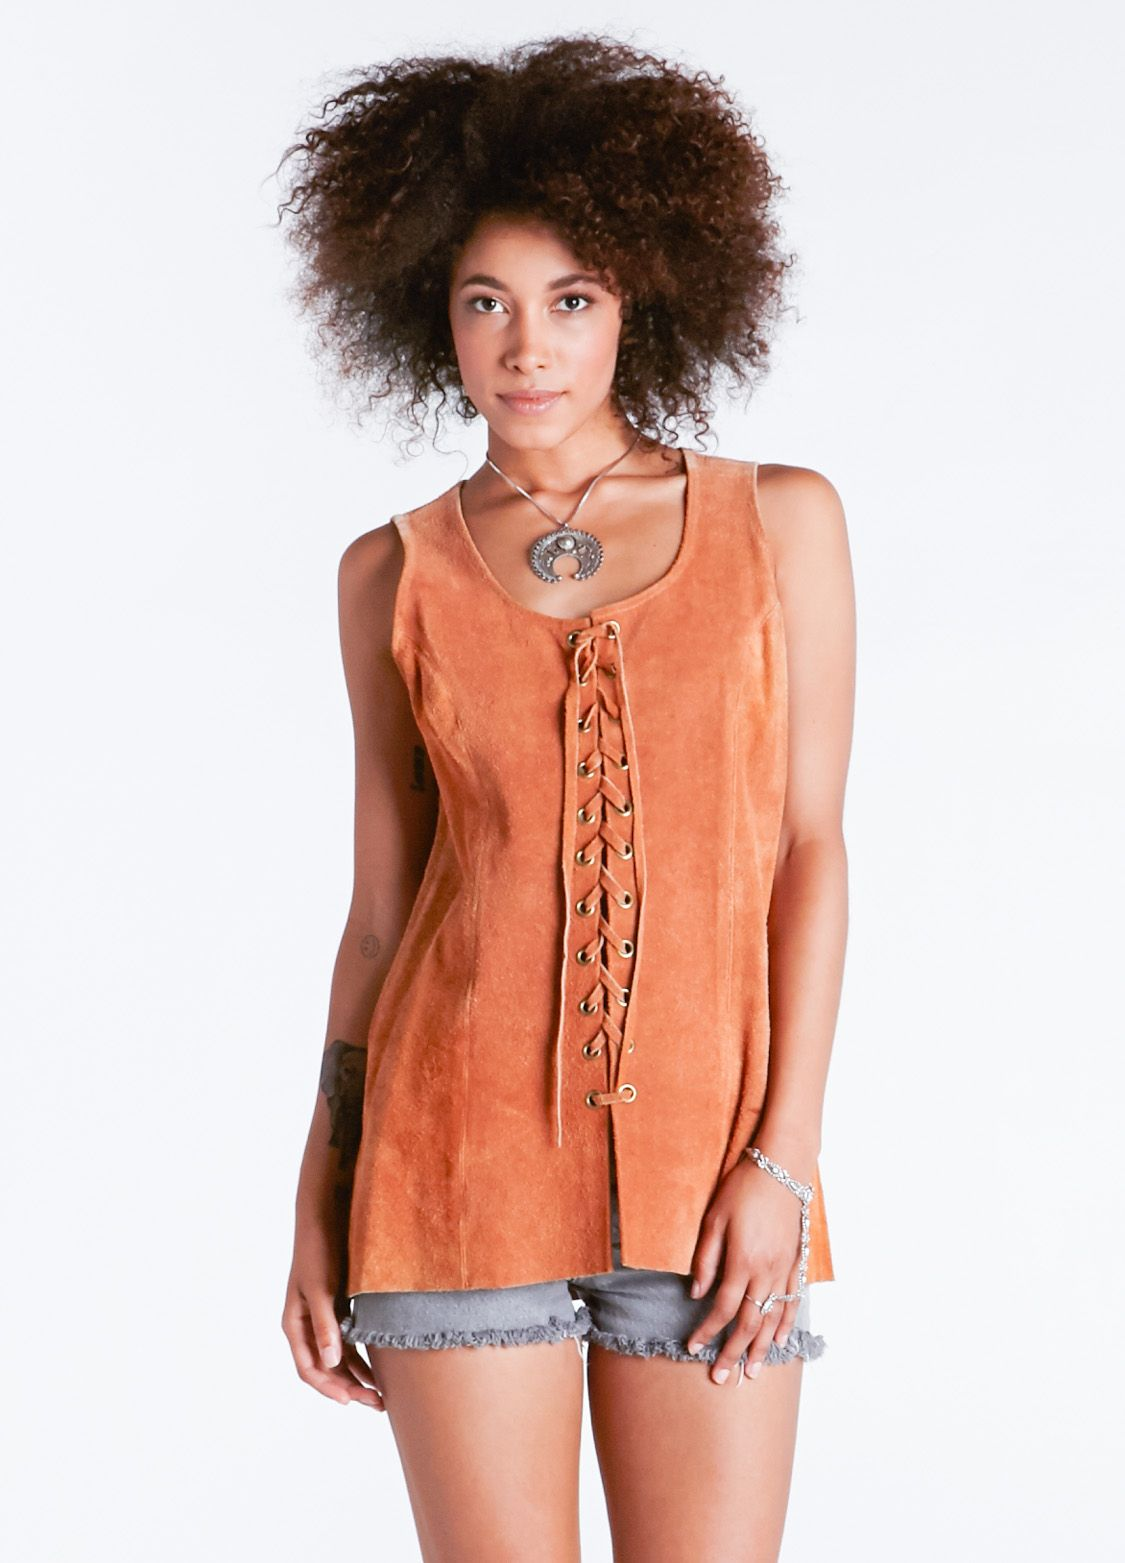 Awesome 70s era suede top featuring front lace up closure  Condition: Good Marked Size: 13/14 Color: Tan Fabric Suede  Bust:34'' Waist: 32'' Length: 28''